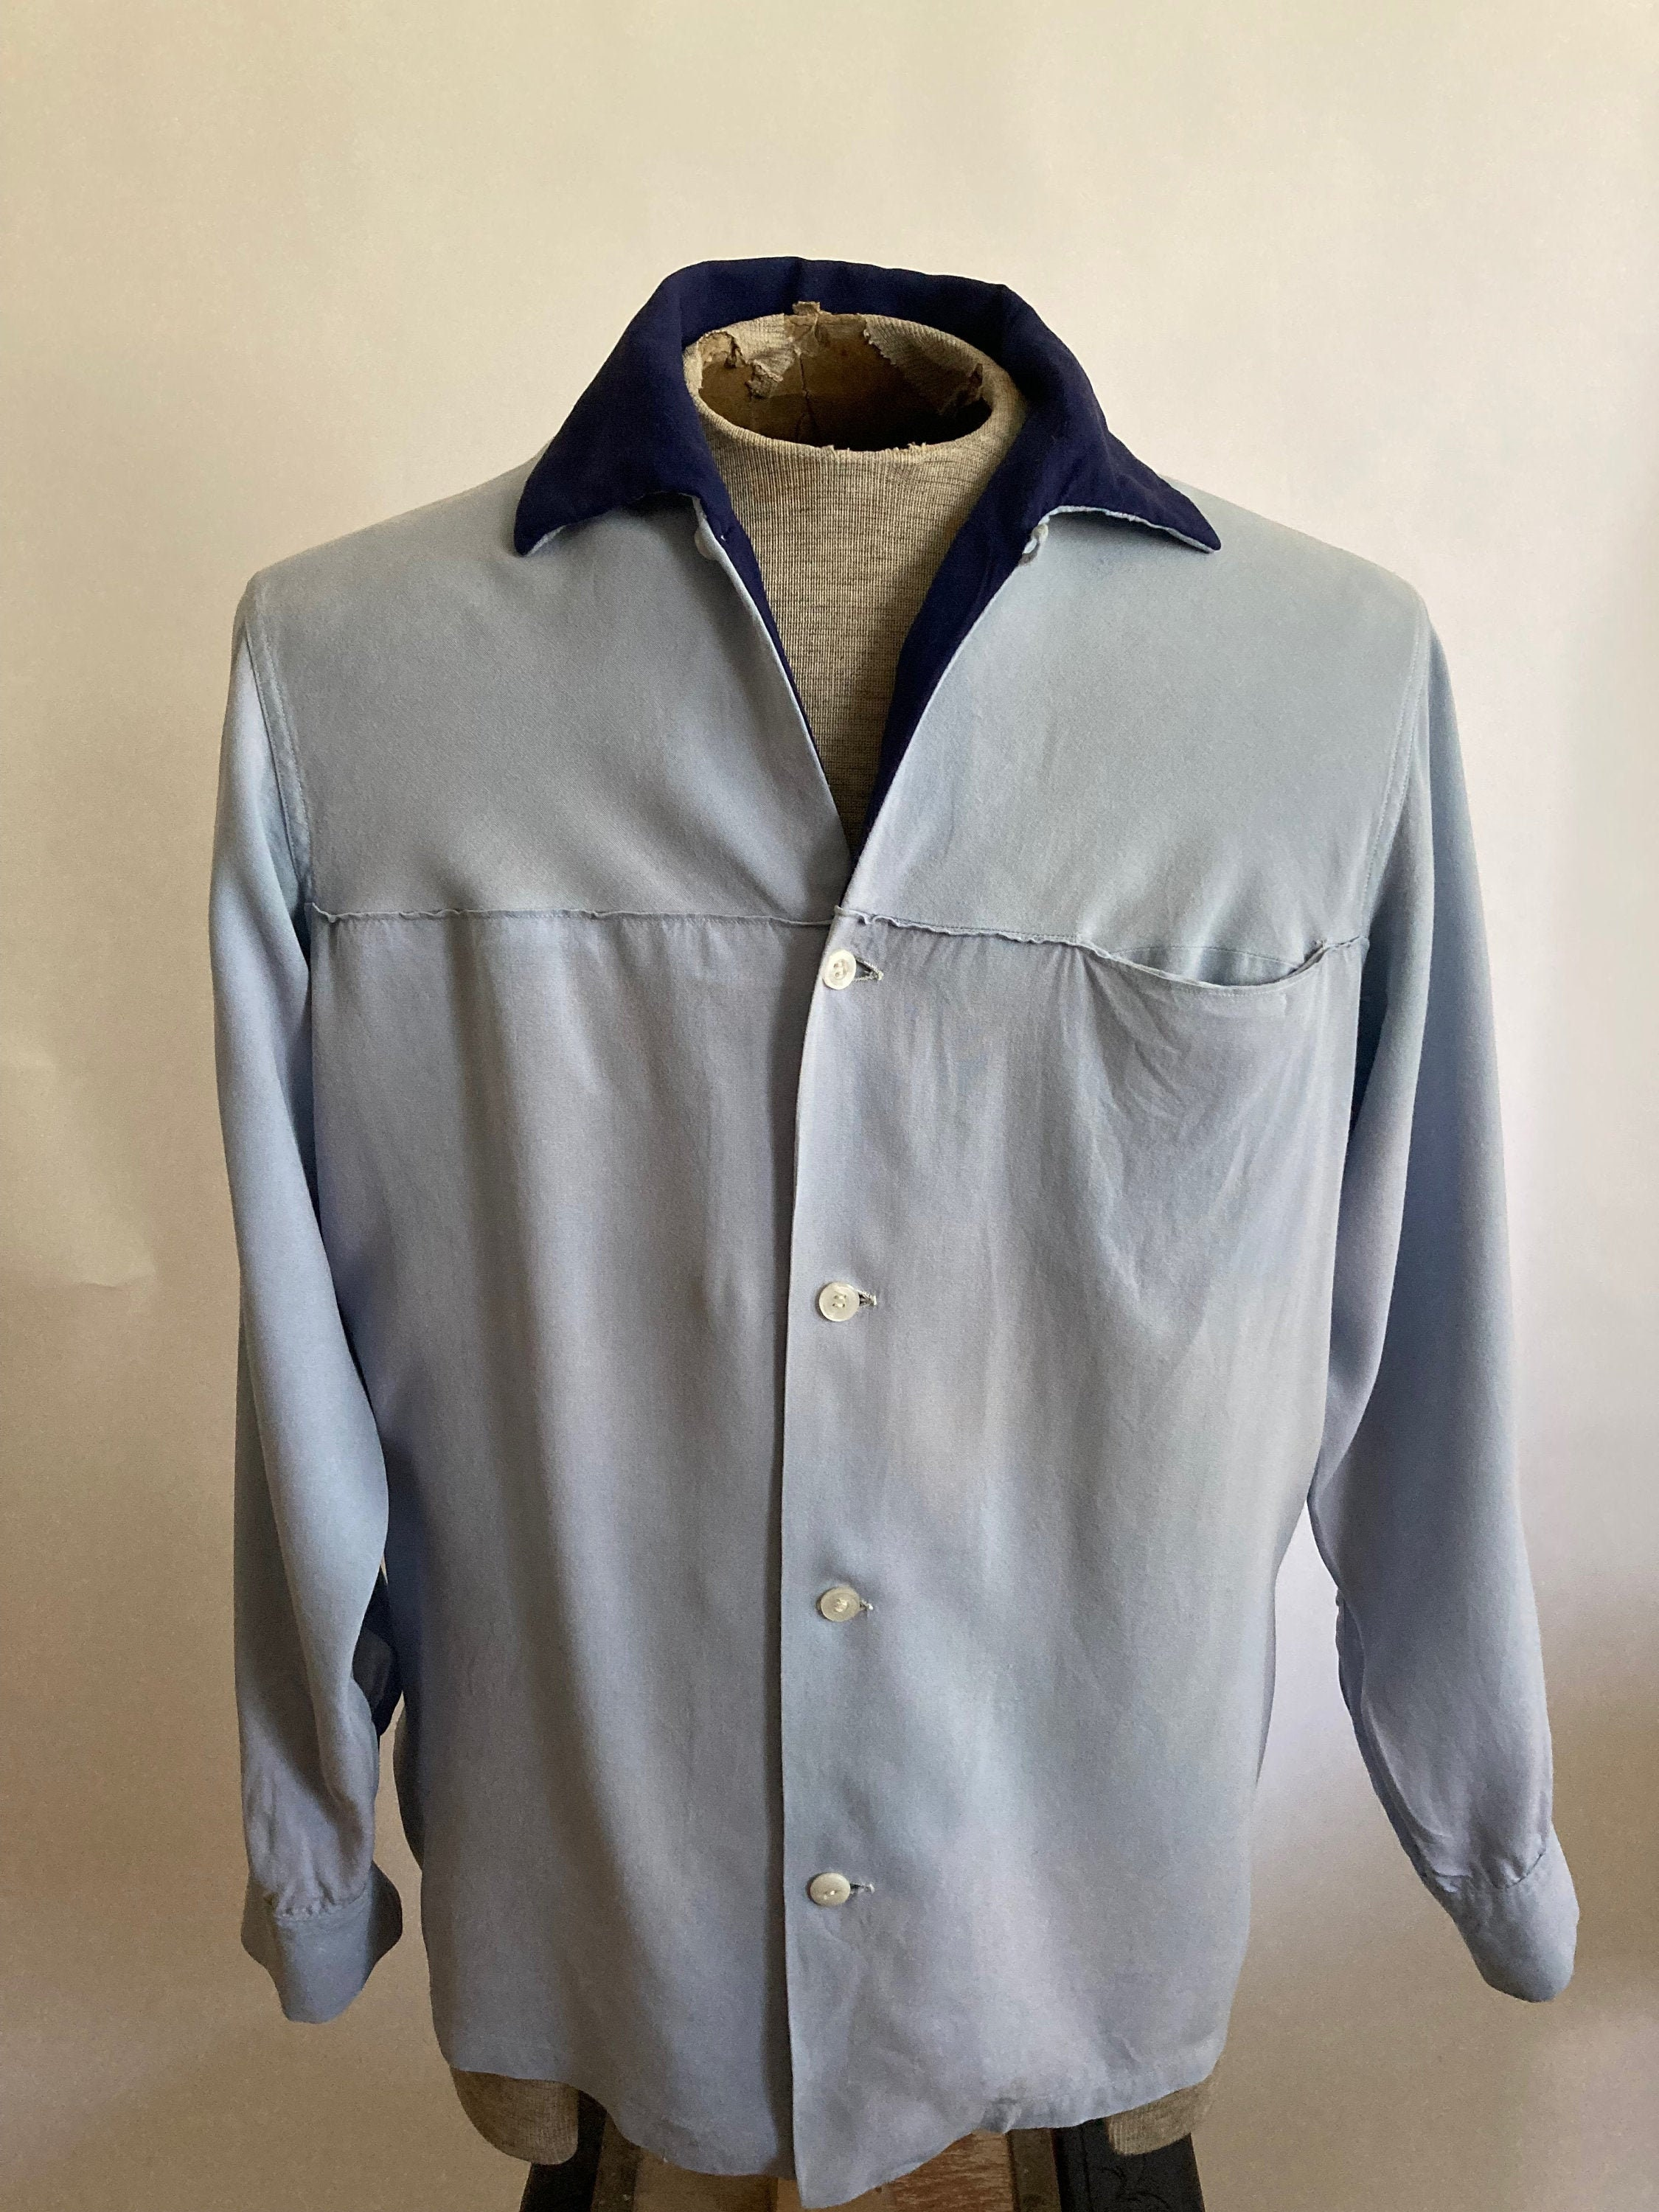 1940s Men's Shirts, Sweaters, Vests 1940S40S ContinentalLane Surreigh Mens Light Blue Rayon Gabardine Long Sleeve Shirt With Navy Collar40S $25.00 AT vintagedancer.com